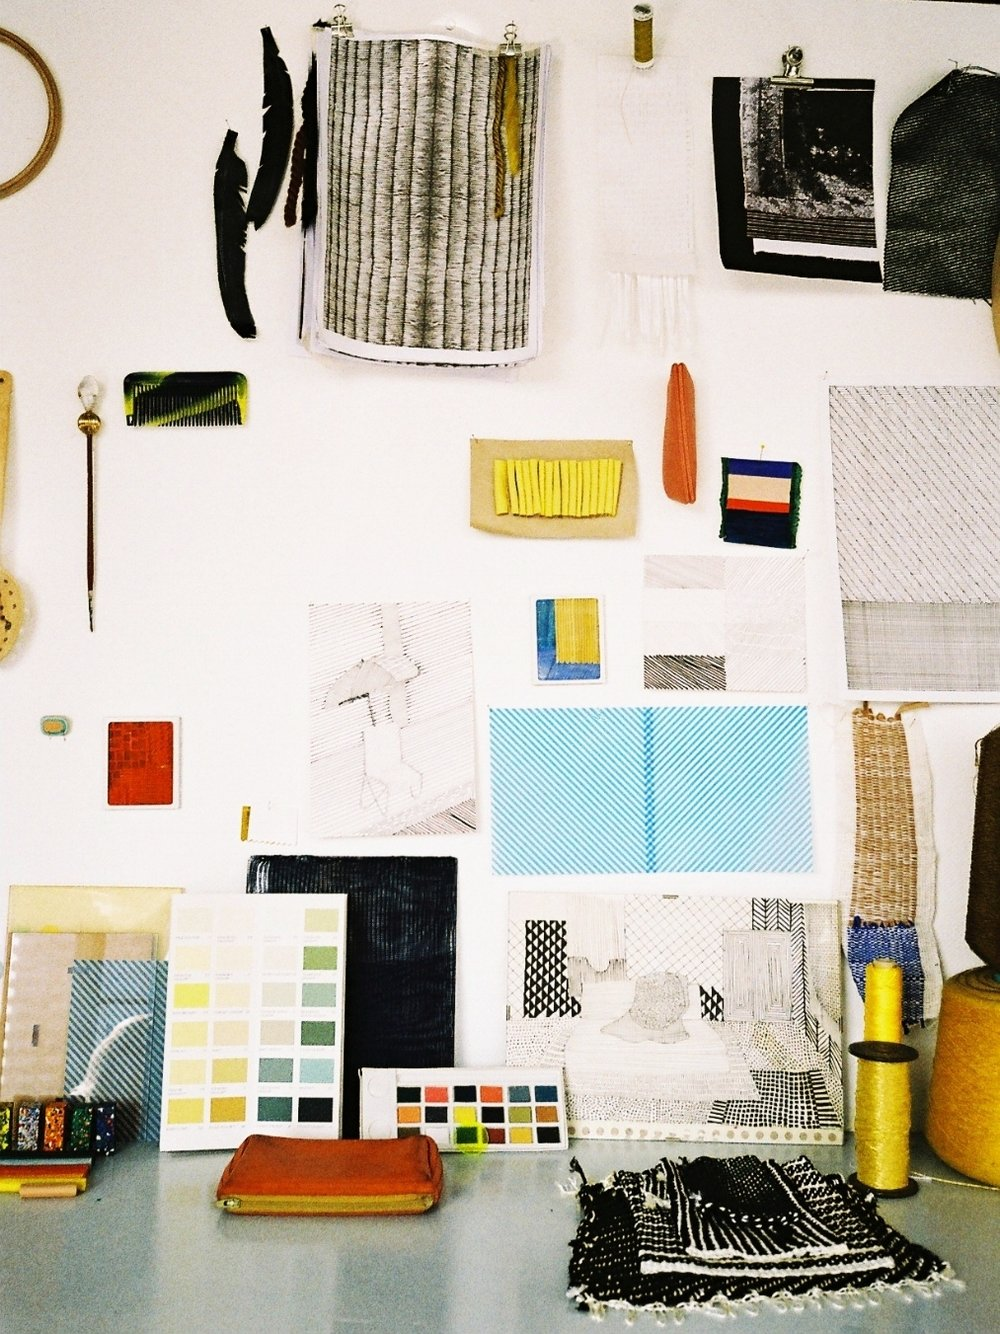 Oh Studio featured at //Slash-Zine